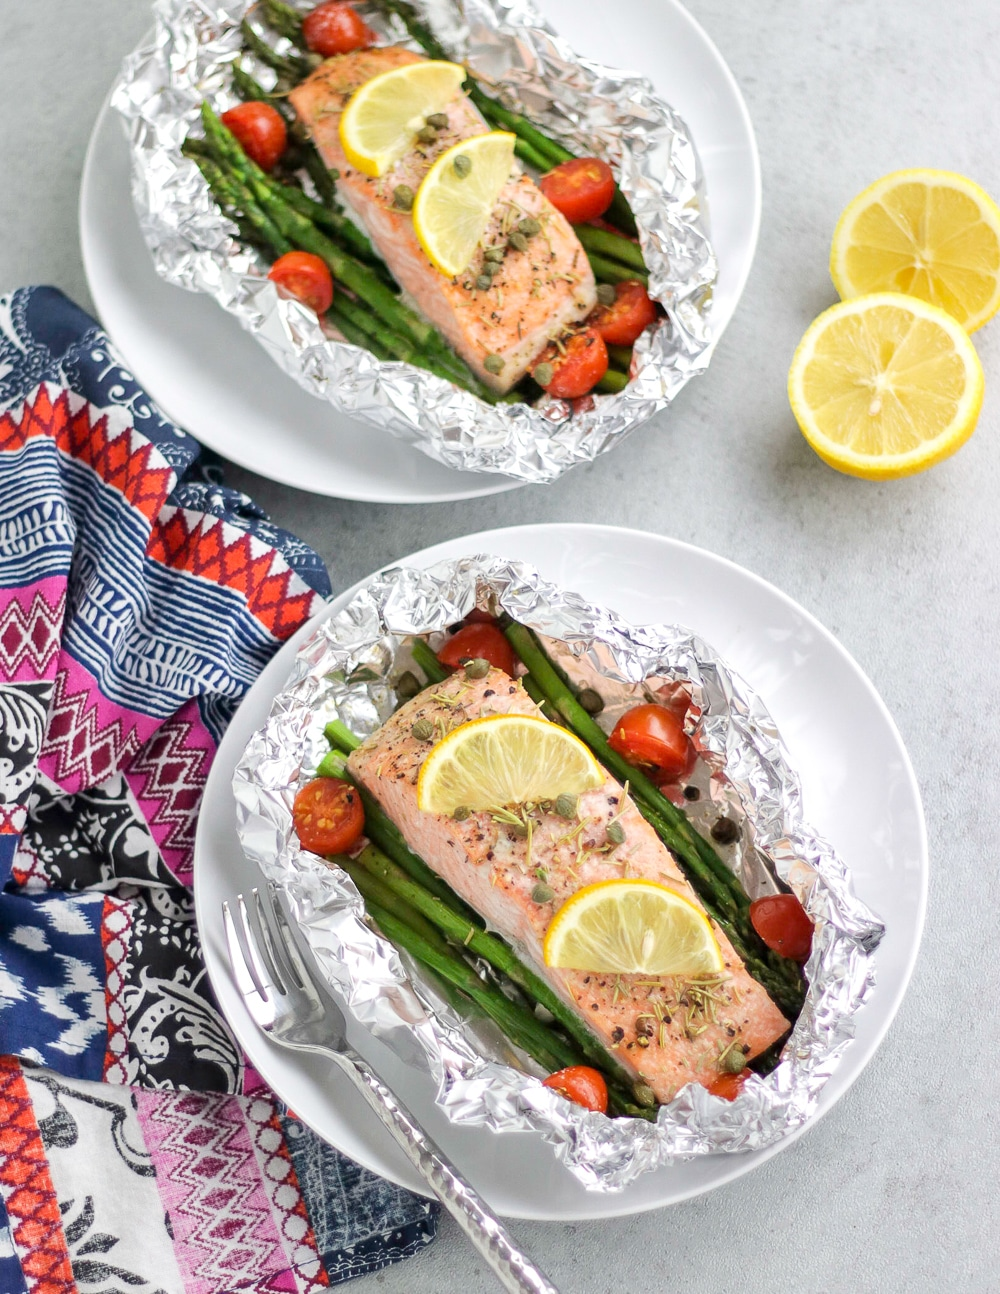 Fish Packets with vegetables that you can grill or bake